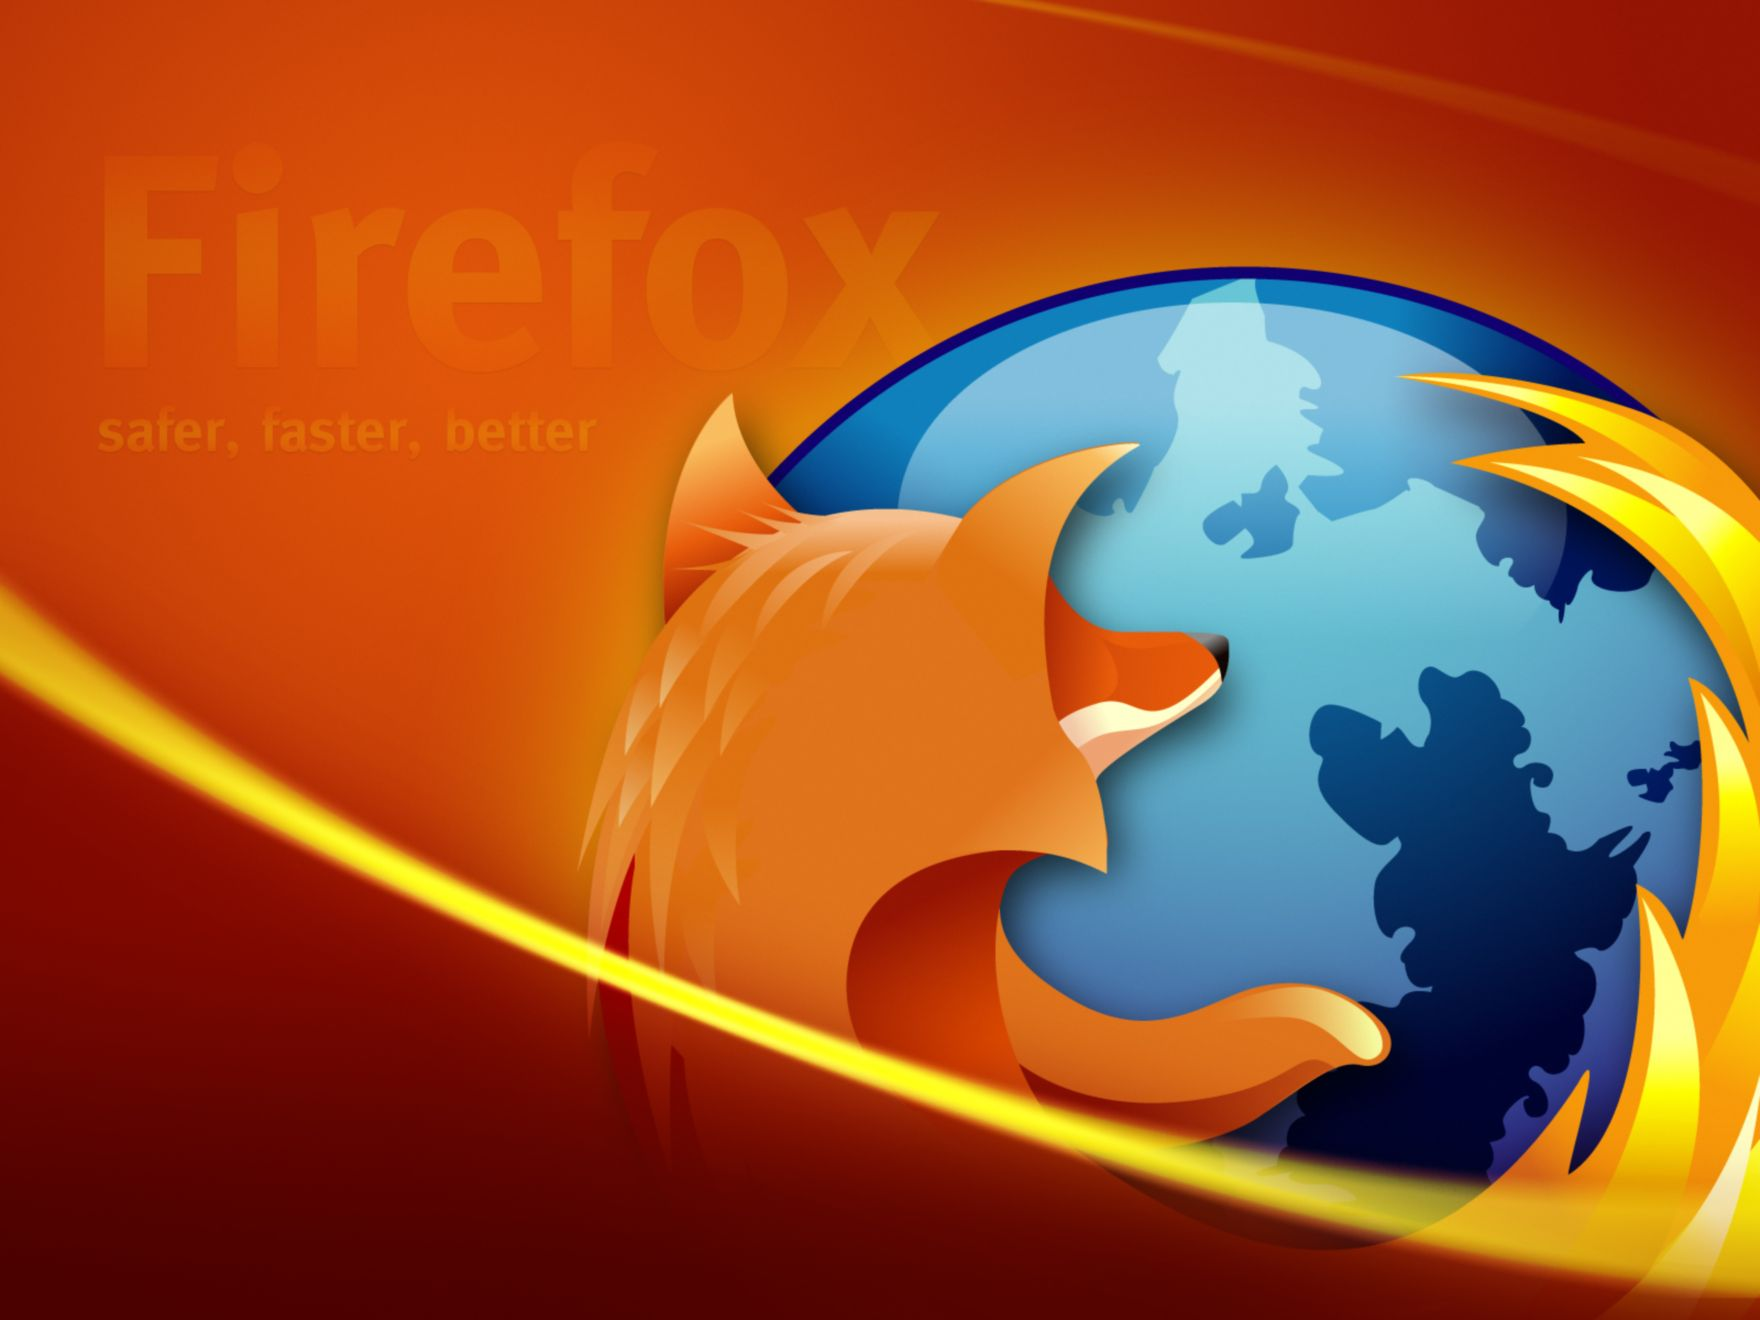 Download free HD Firefox Safer Better Faster Normal Wallpaper, image